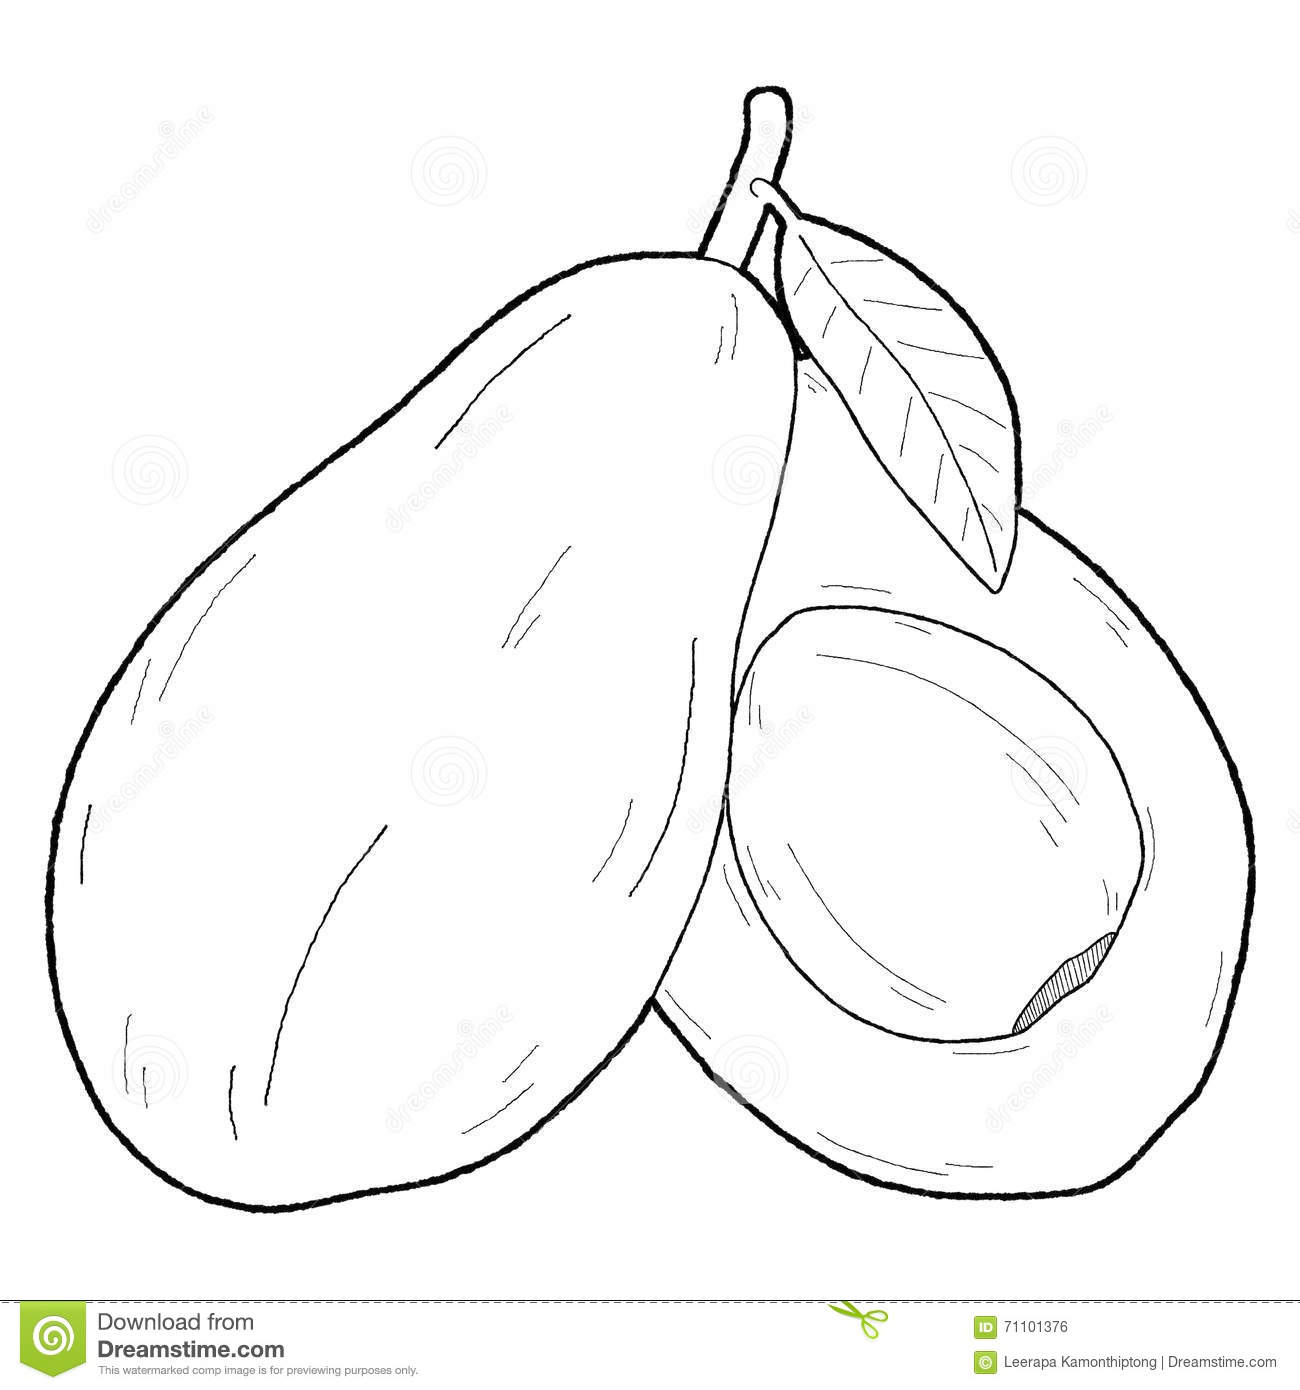 Avocado black and white clipart 6 » Clipart Station.